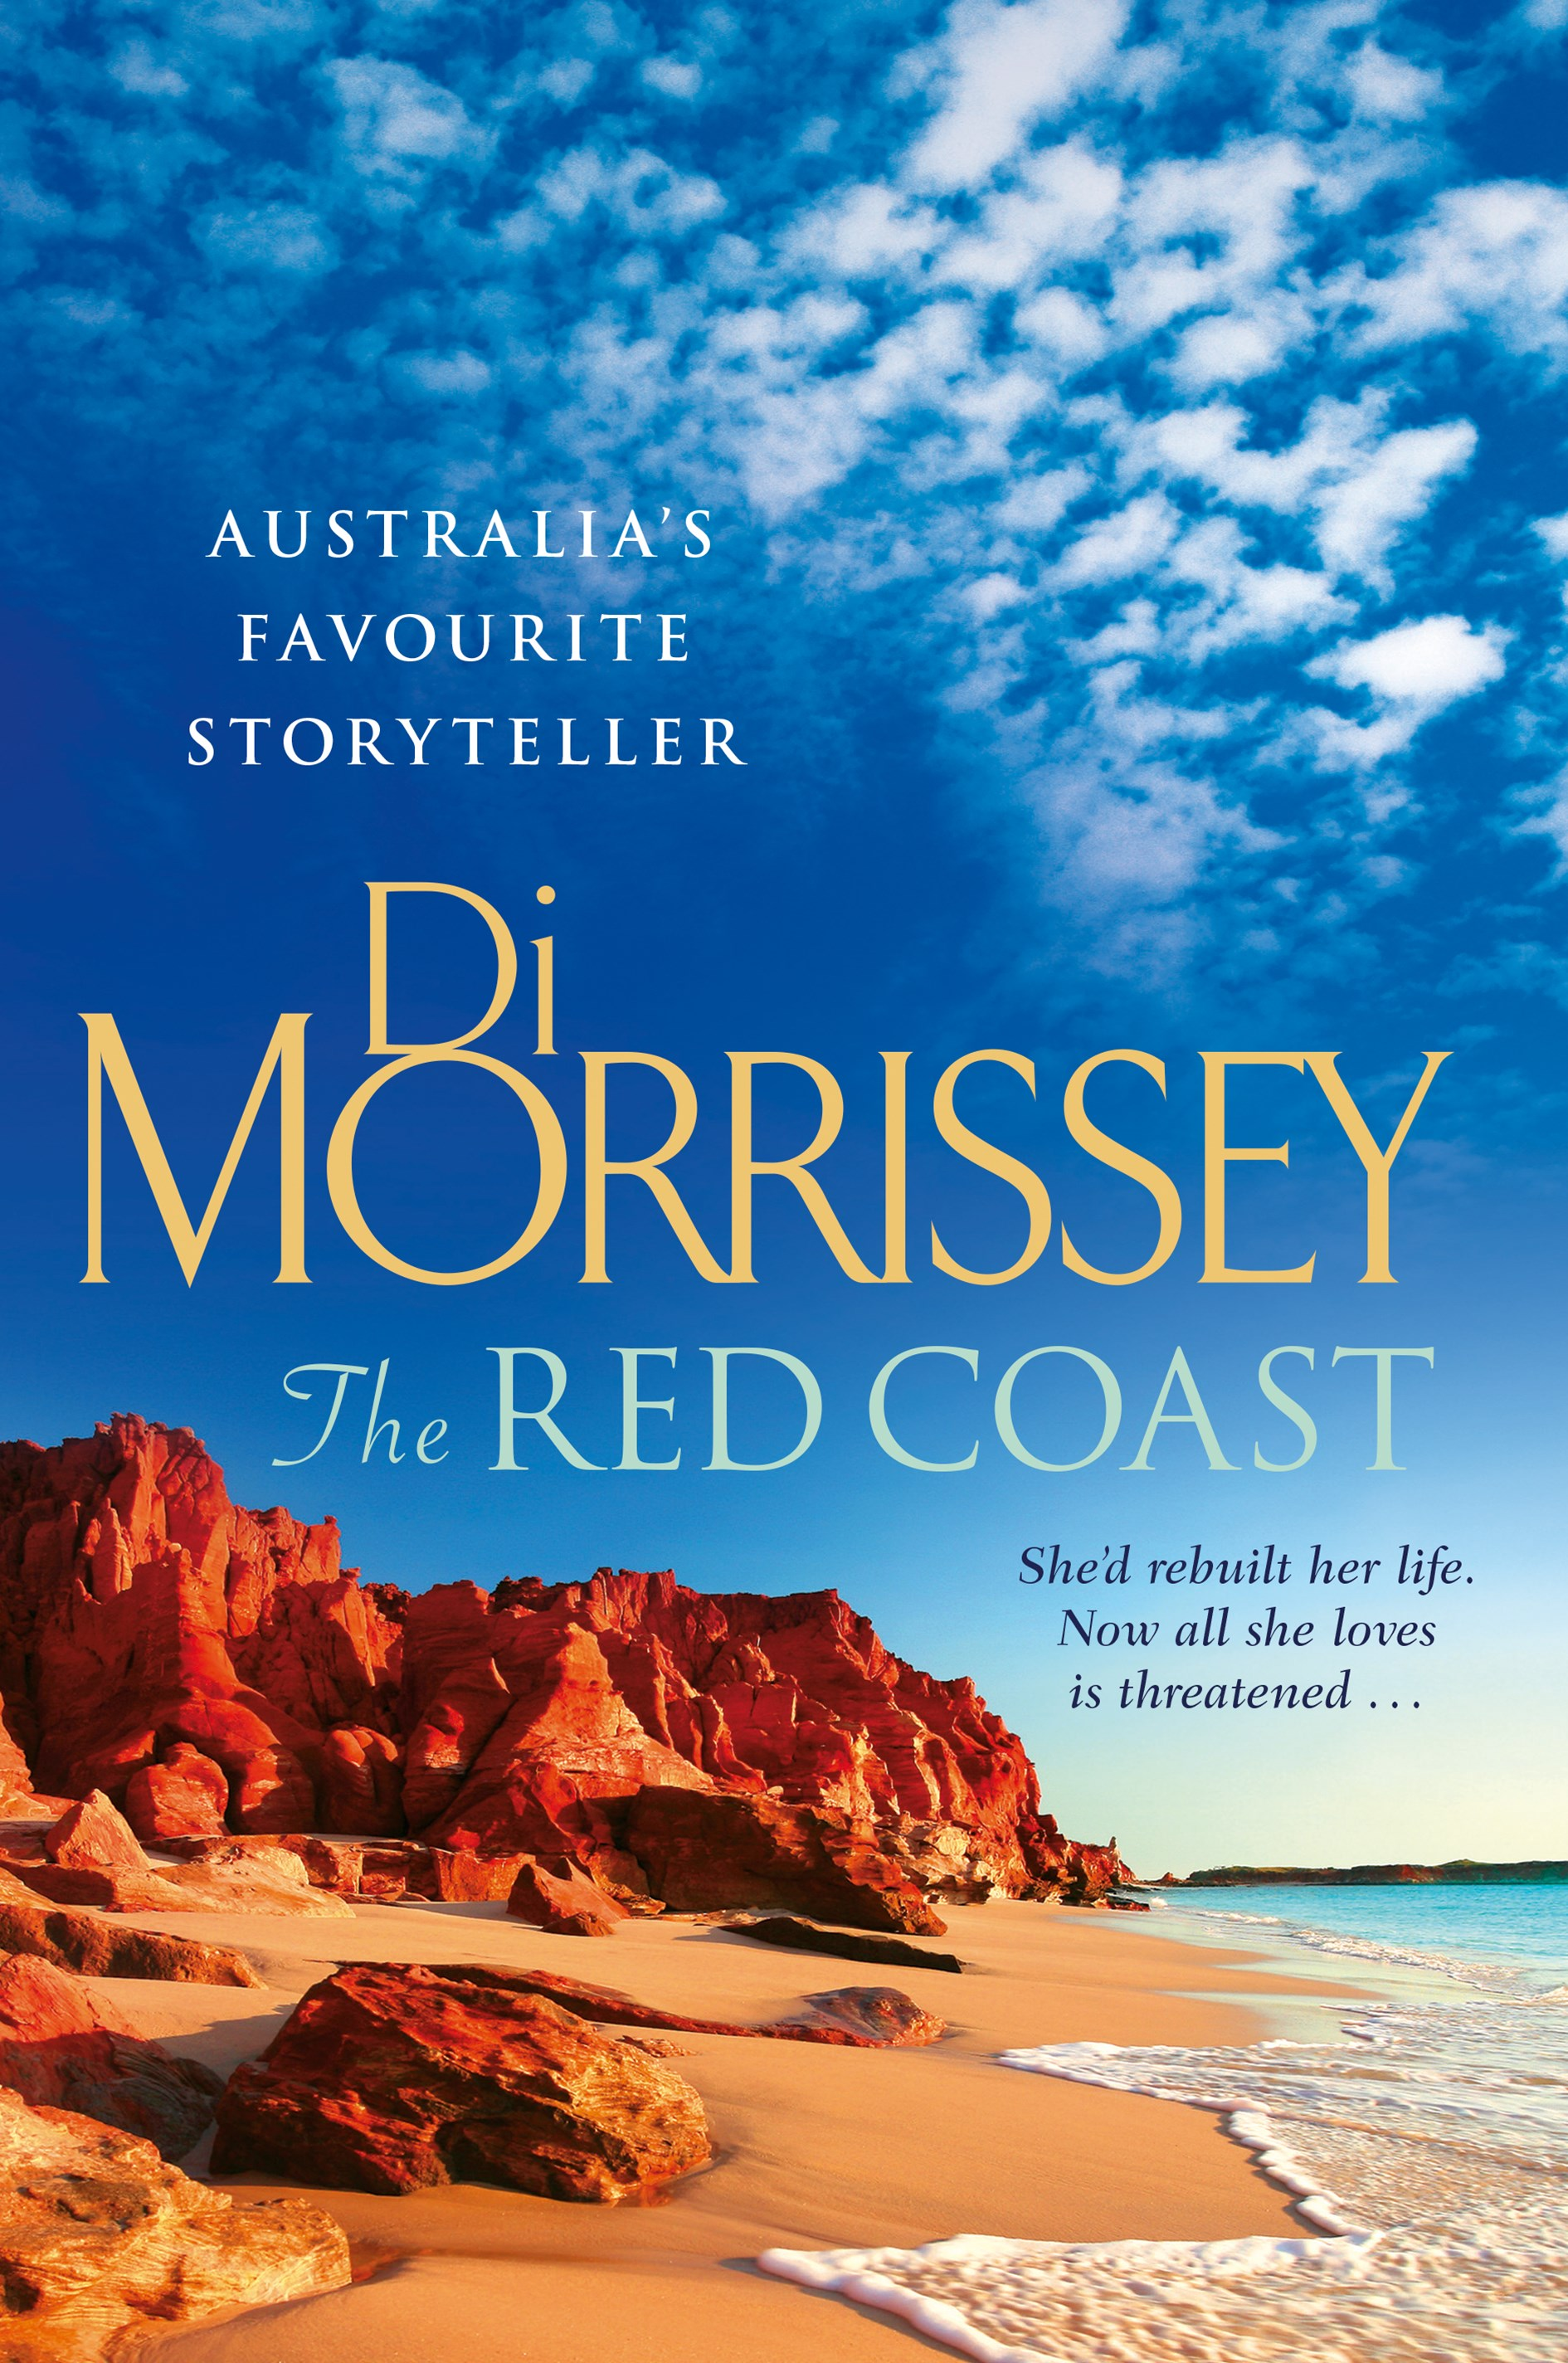 Enjoy a sundowner with Australia's favourite storyteller Di Morrissey